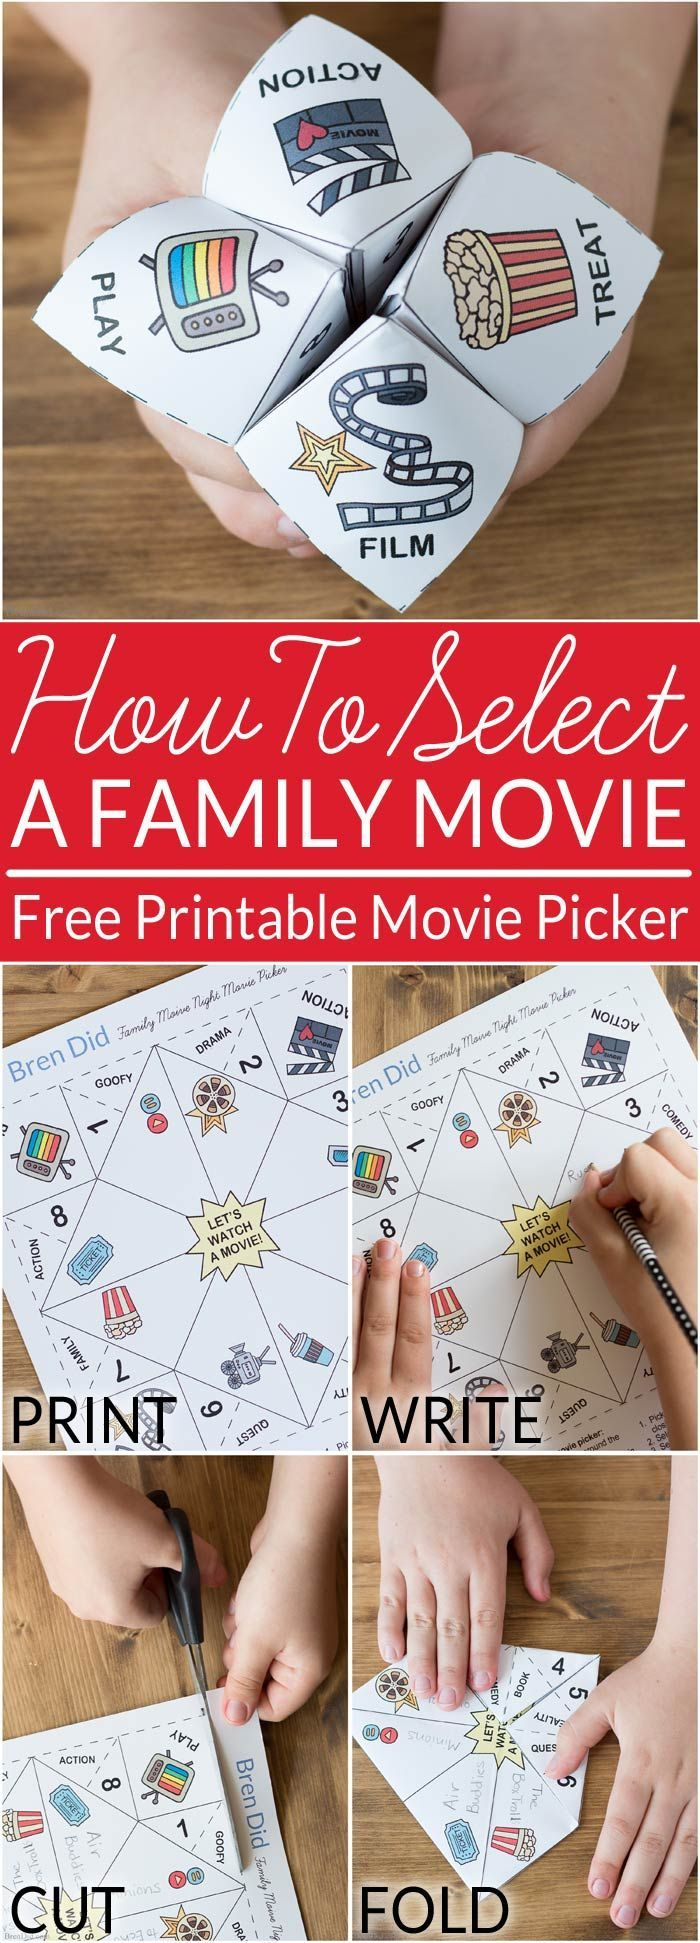 How to Select a Movie Your Family Will Love - Have you ever tried to select a movie to watch with assistance from children? This movie selector makes movie night a lot more fun. Print out the free movie selector, have each child add a few of their favorite movies, and then play a round to choose a movie for the night.